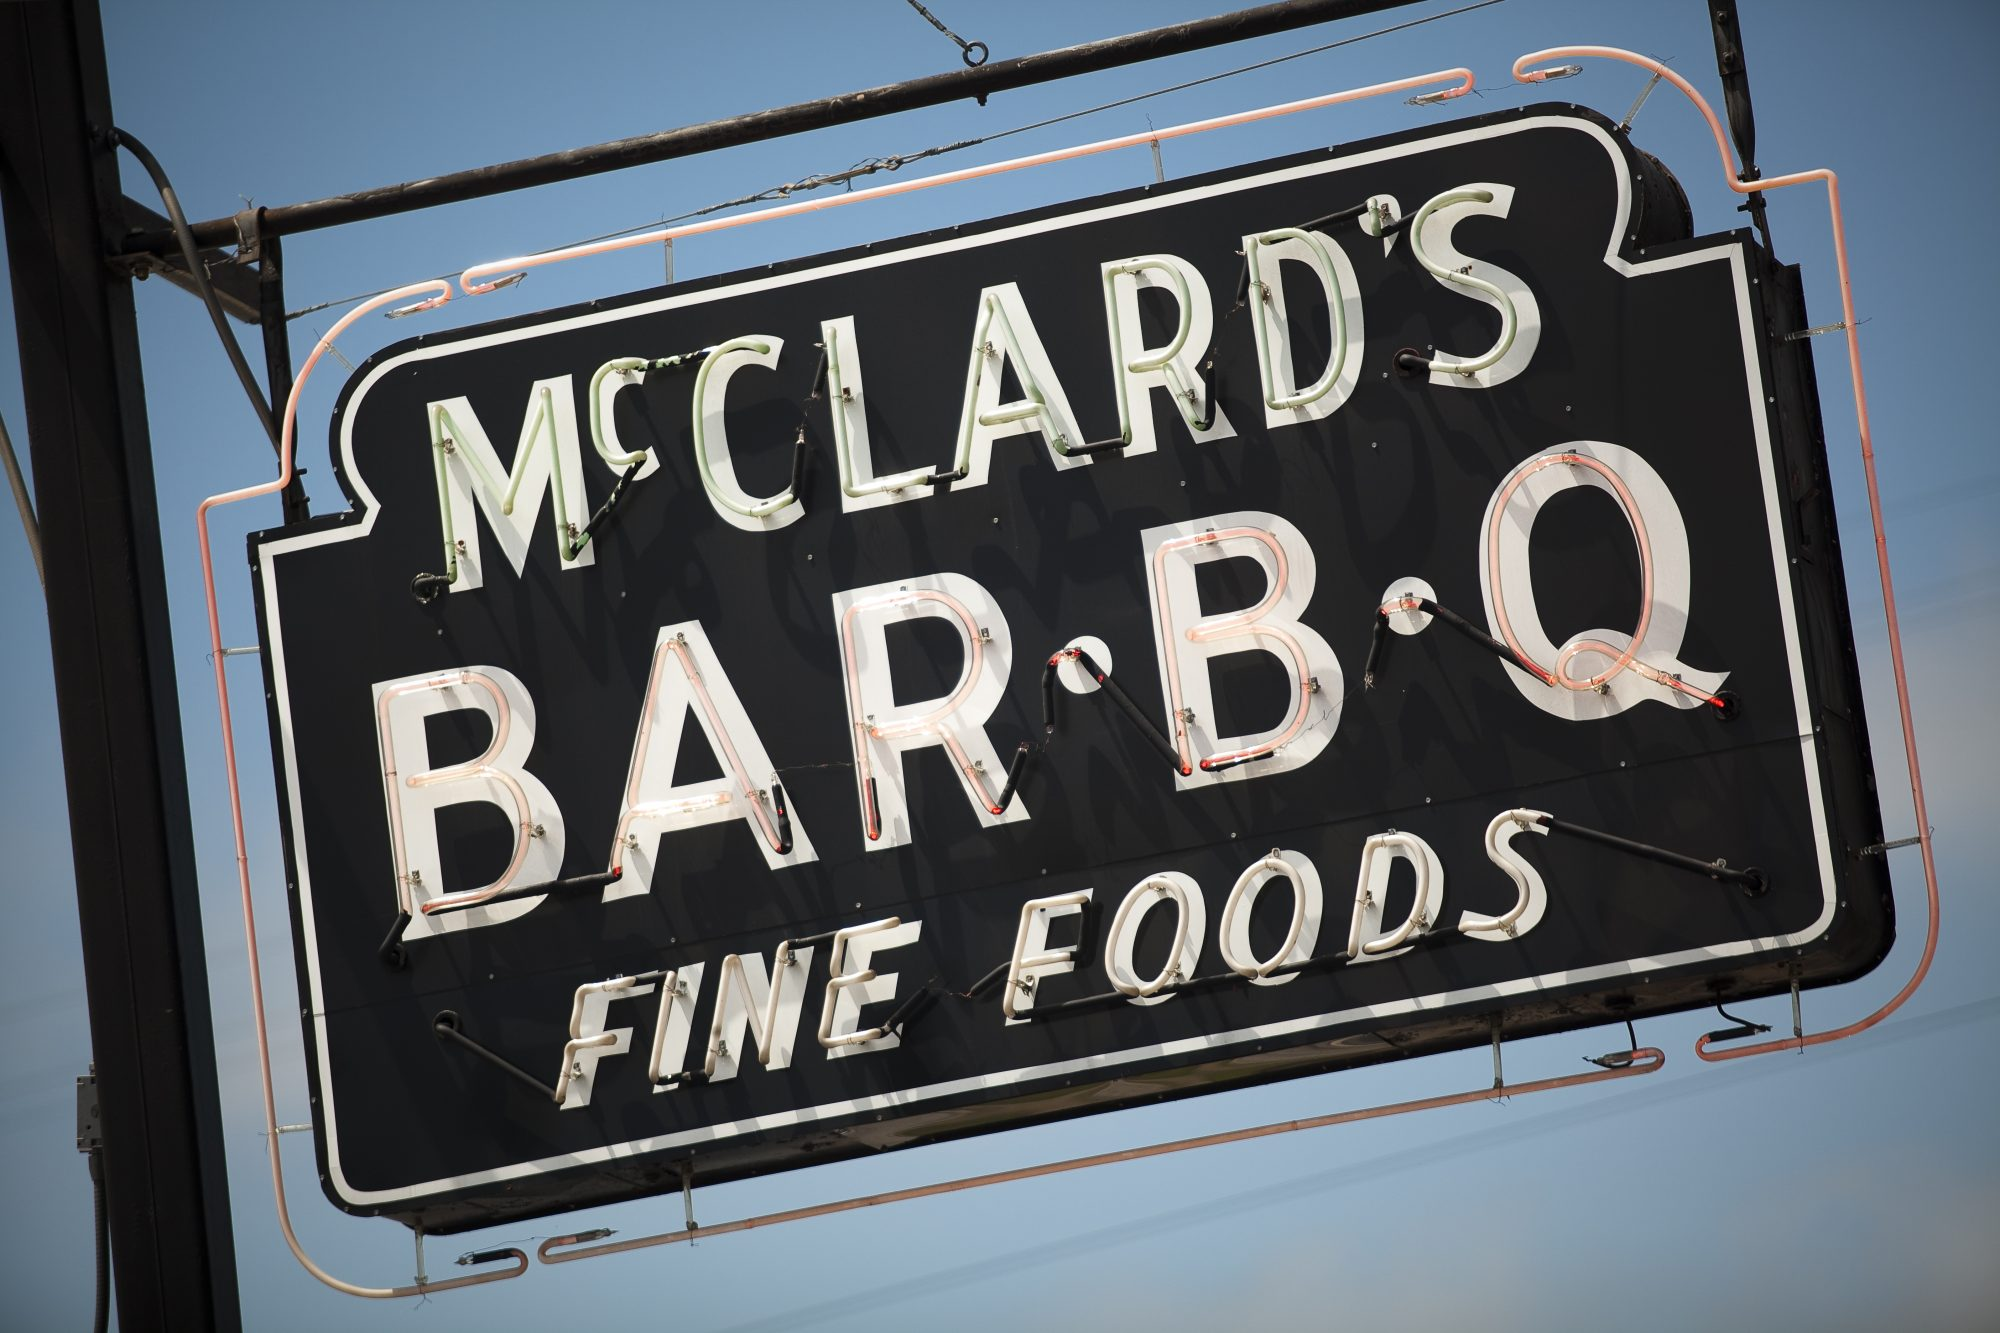 Arkansas: McClard's Bar-B-Q